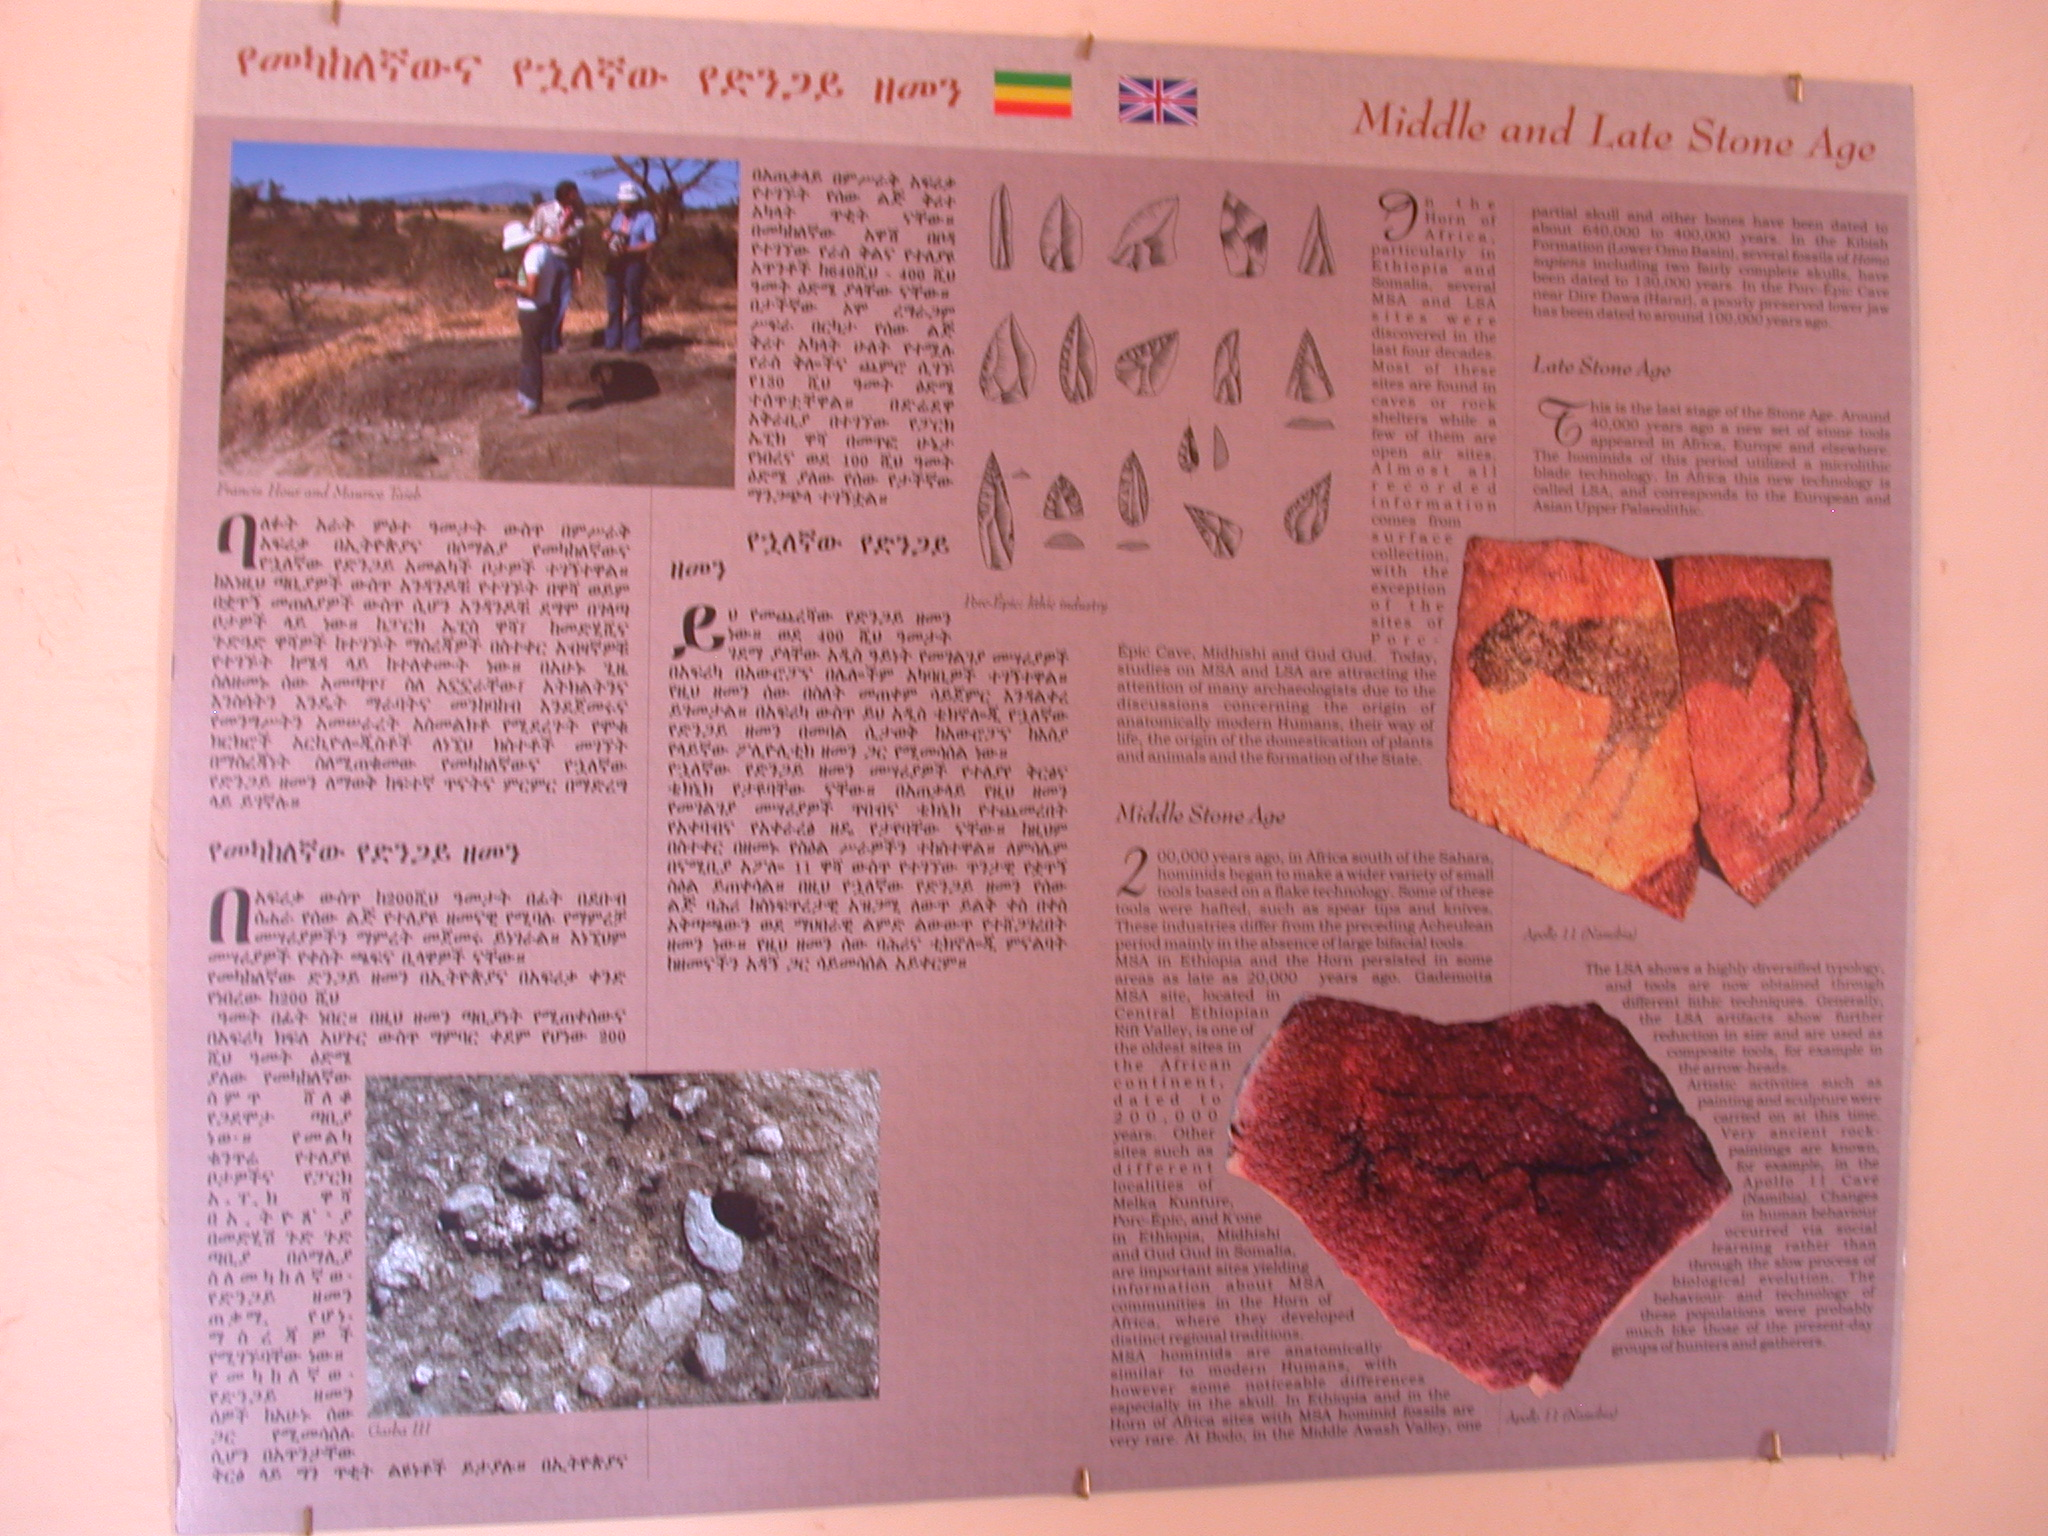 Middle and Late Stone Age Poster, Melka Kunture, Ethiopia